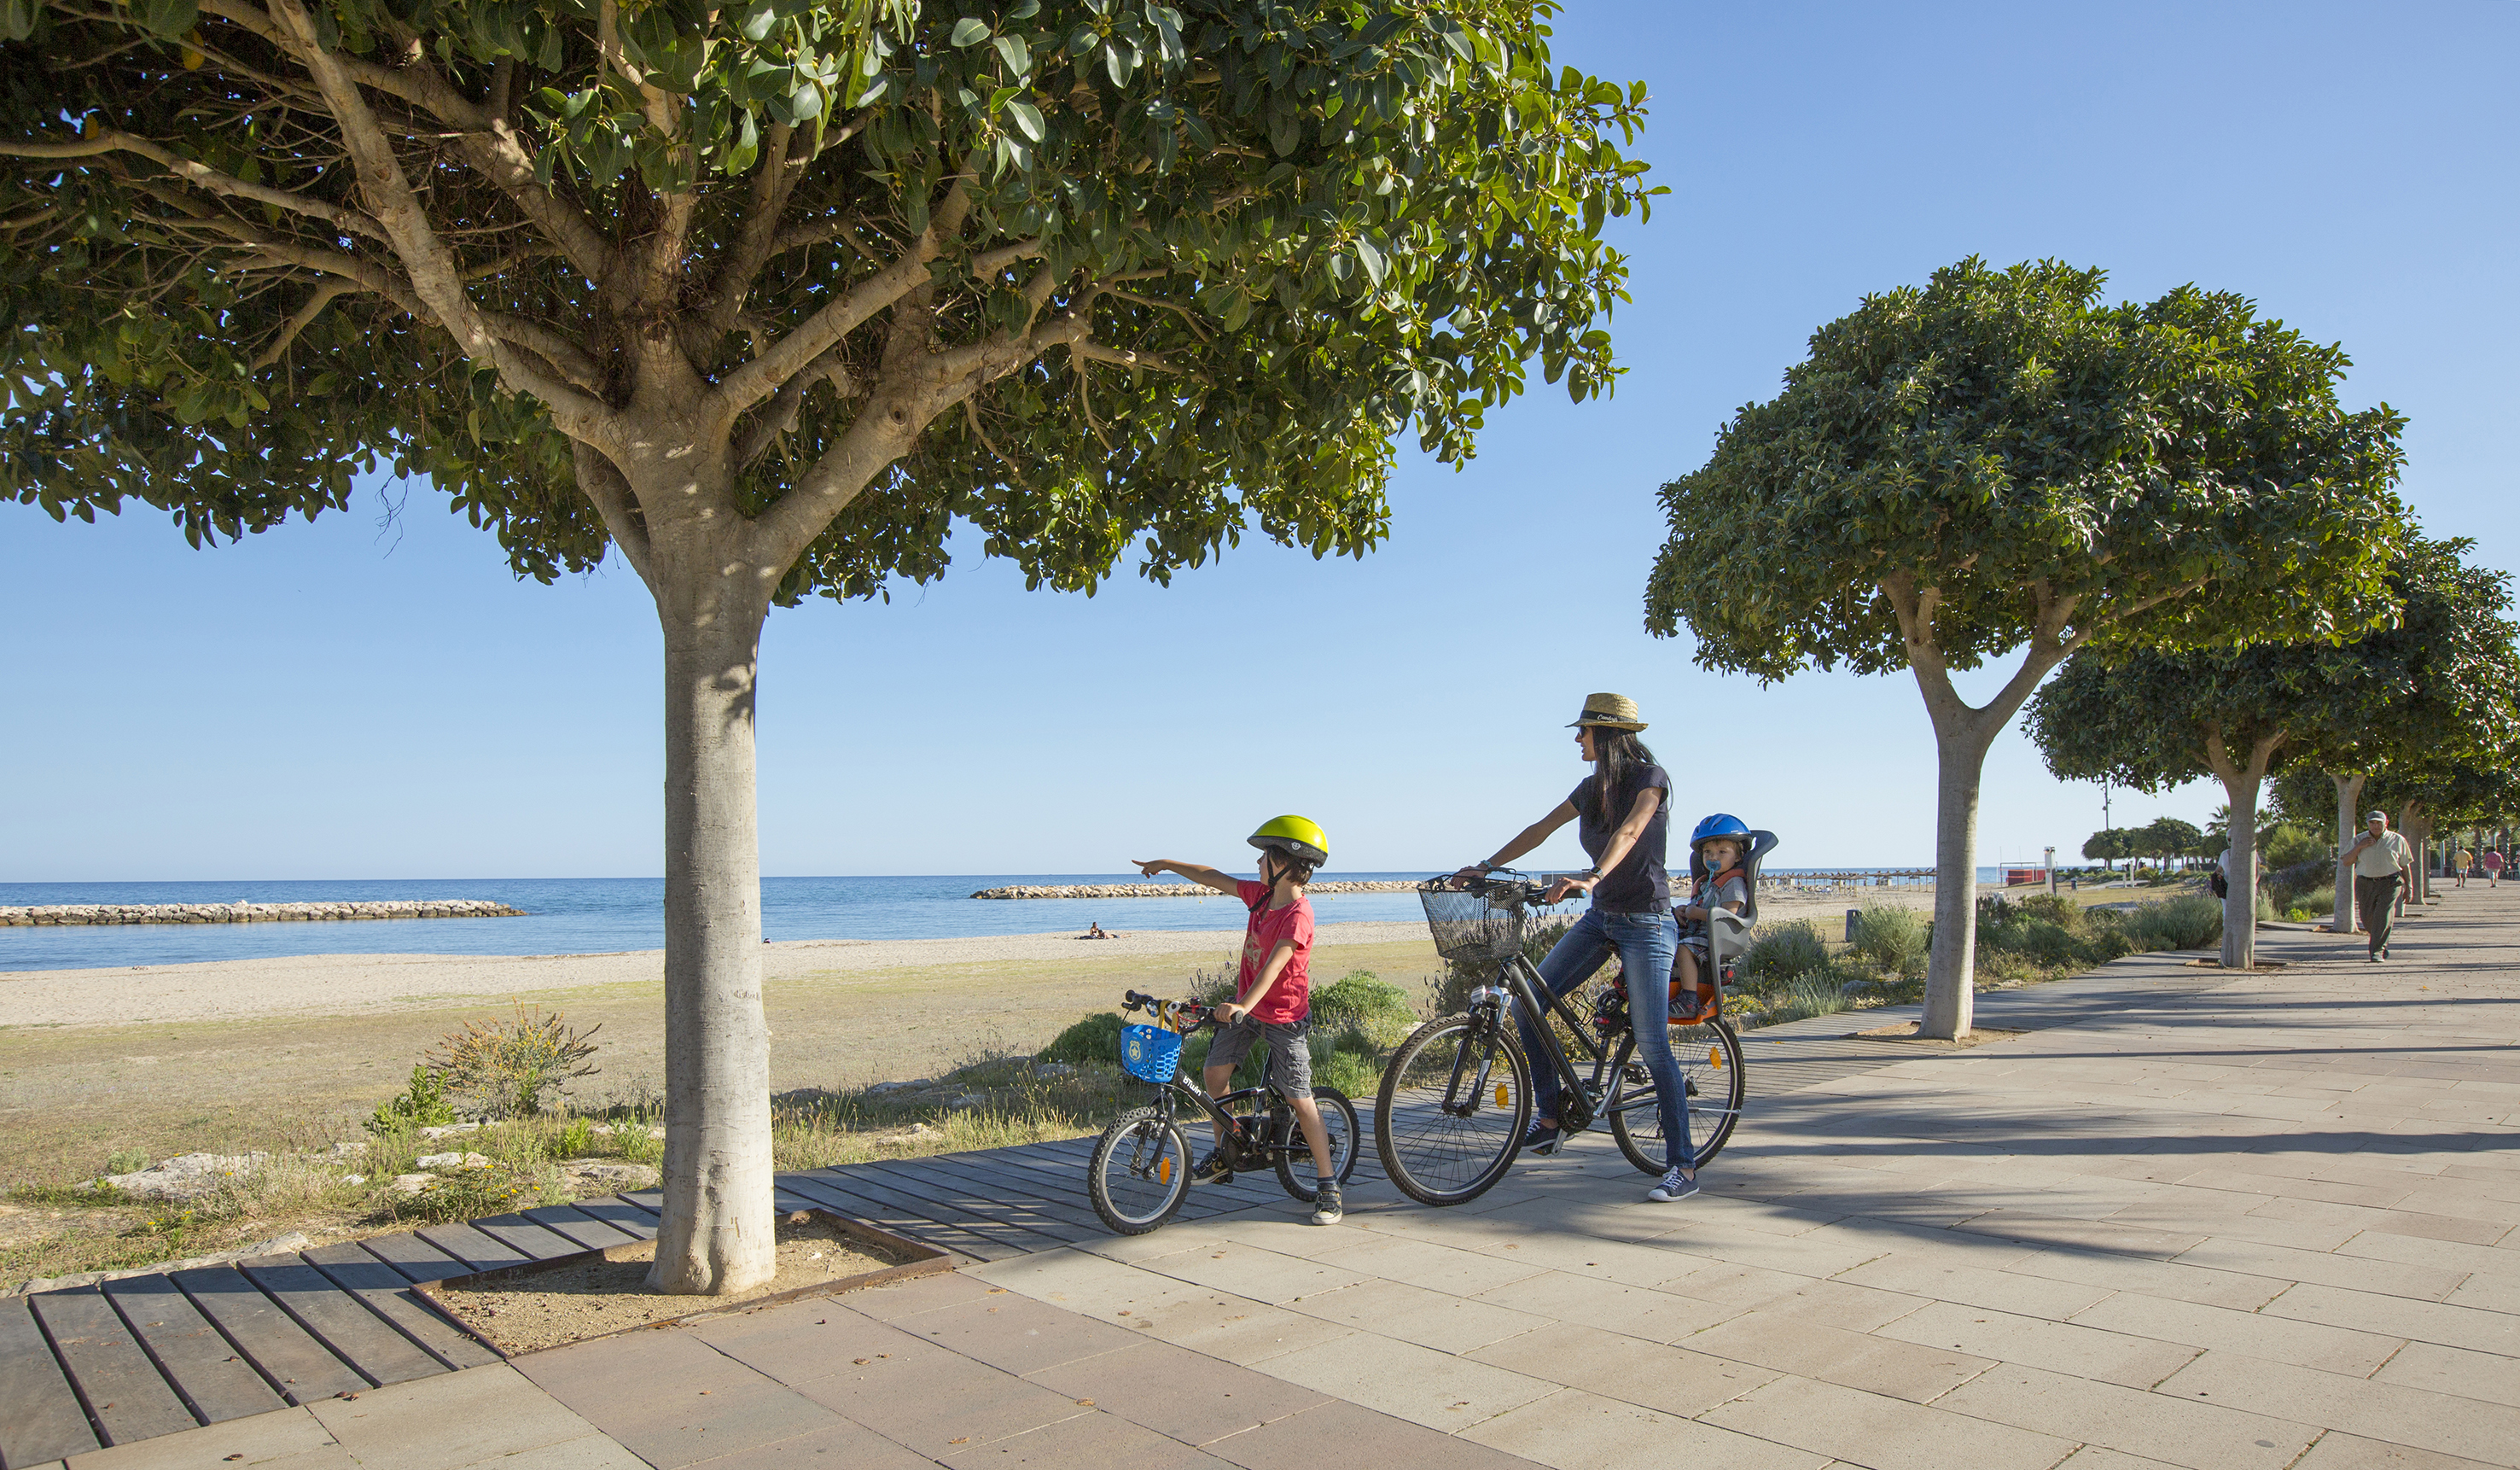 Family itinerari through Cambrils' parks